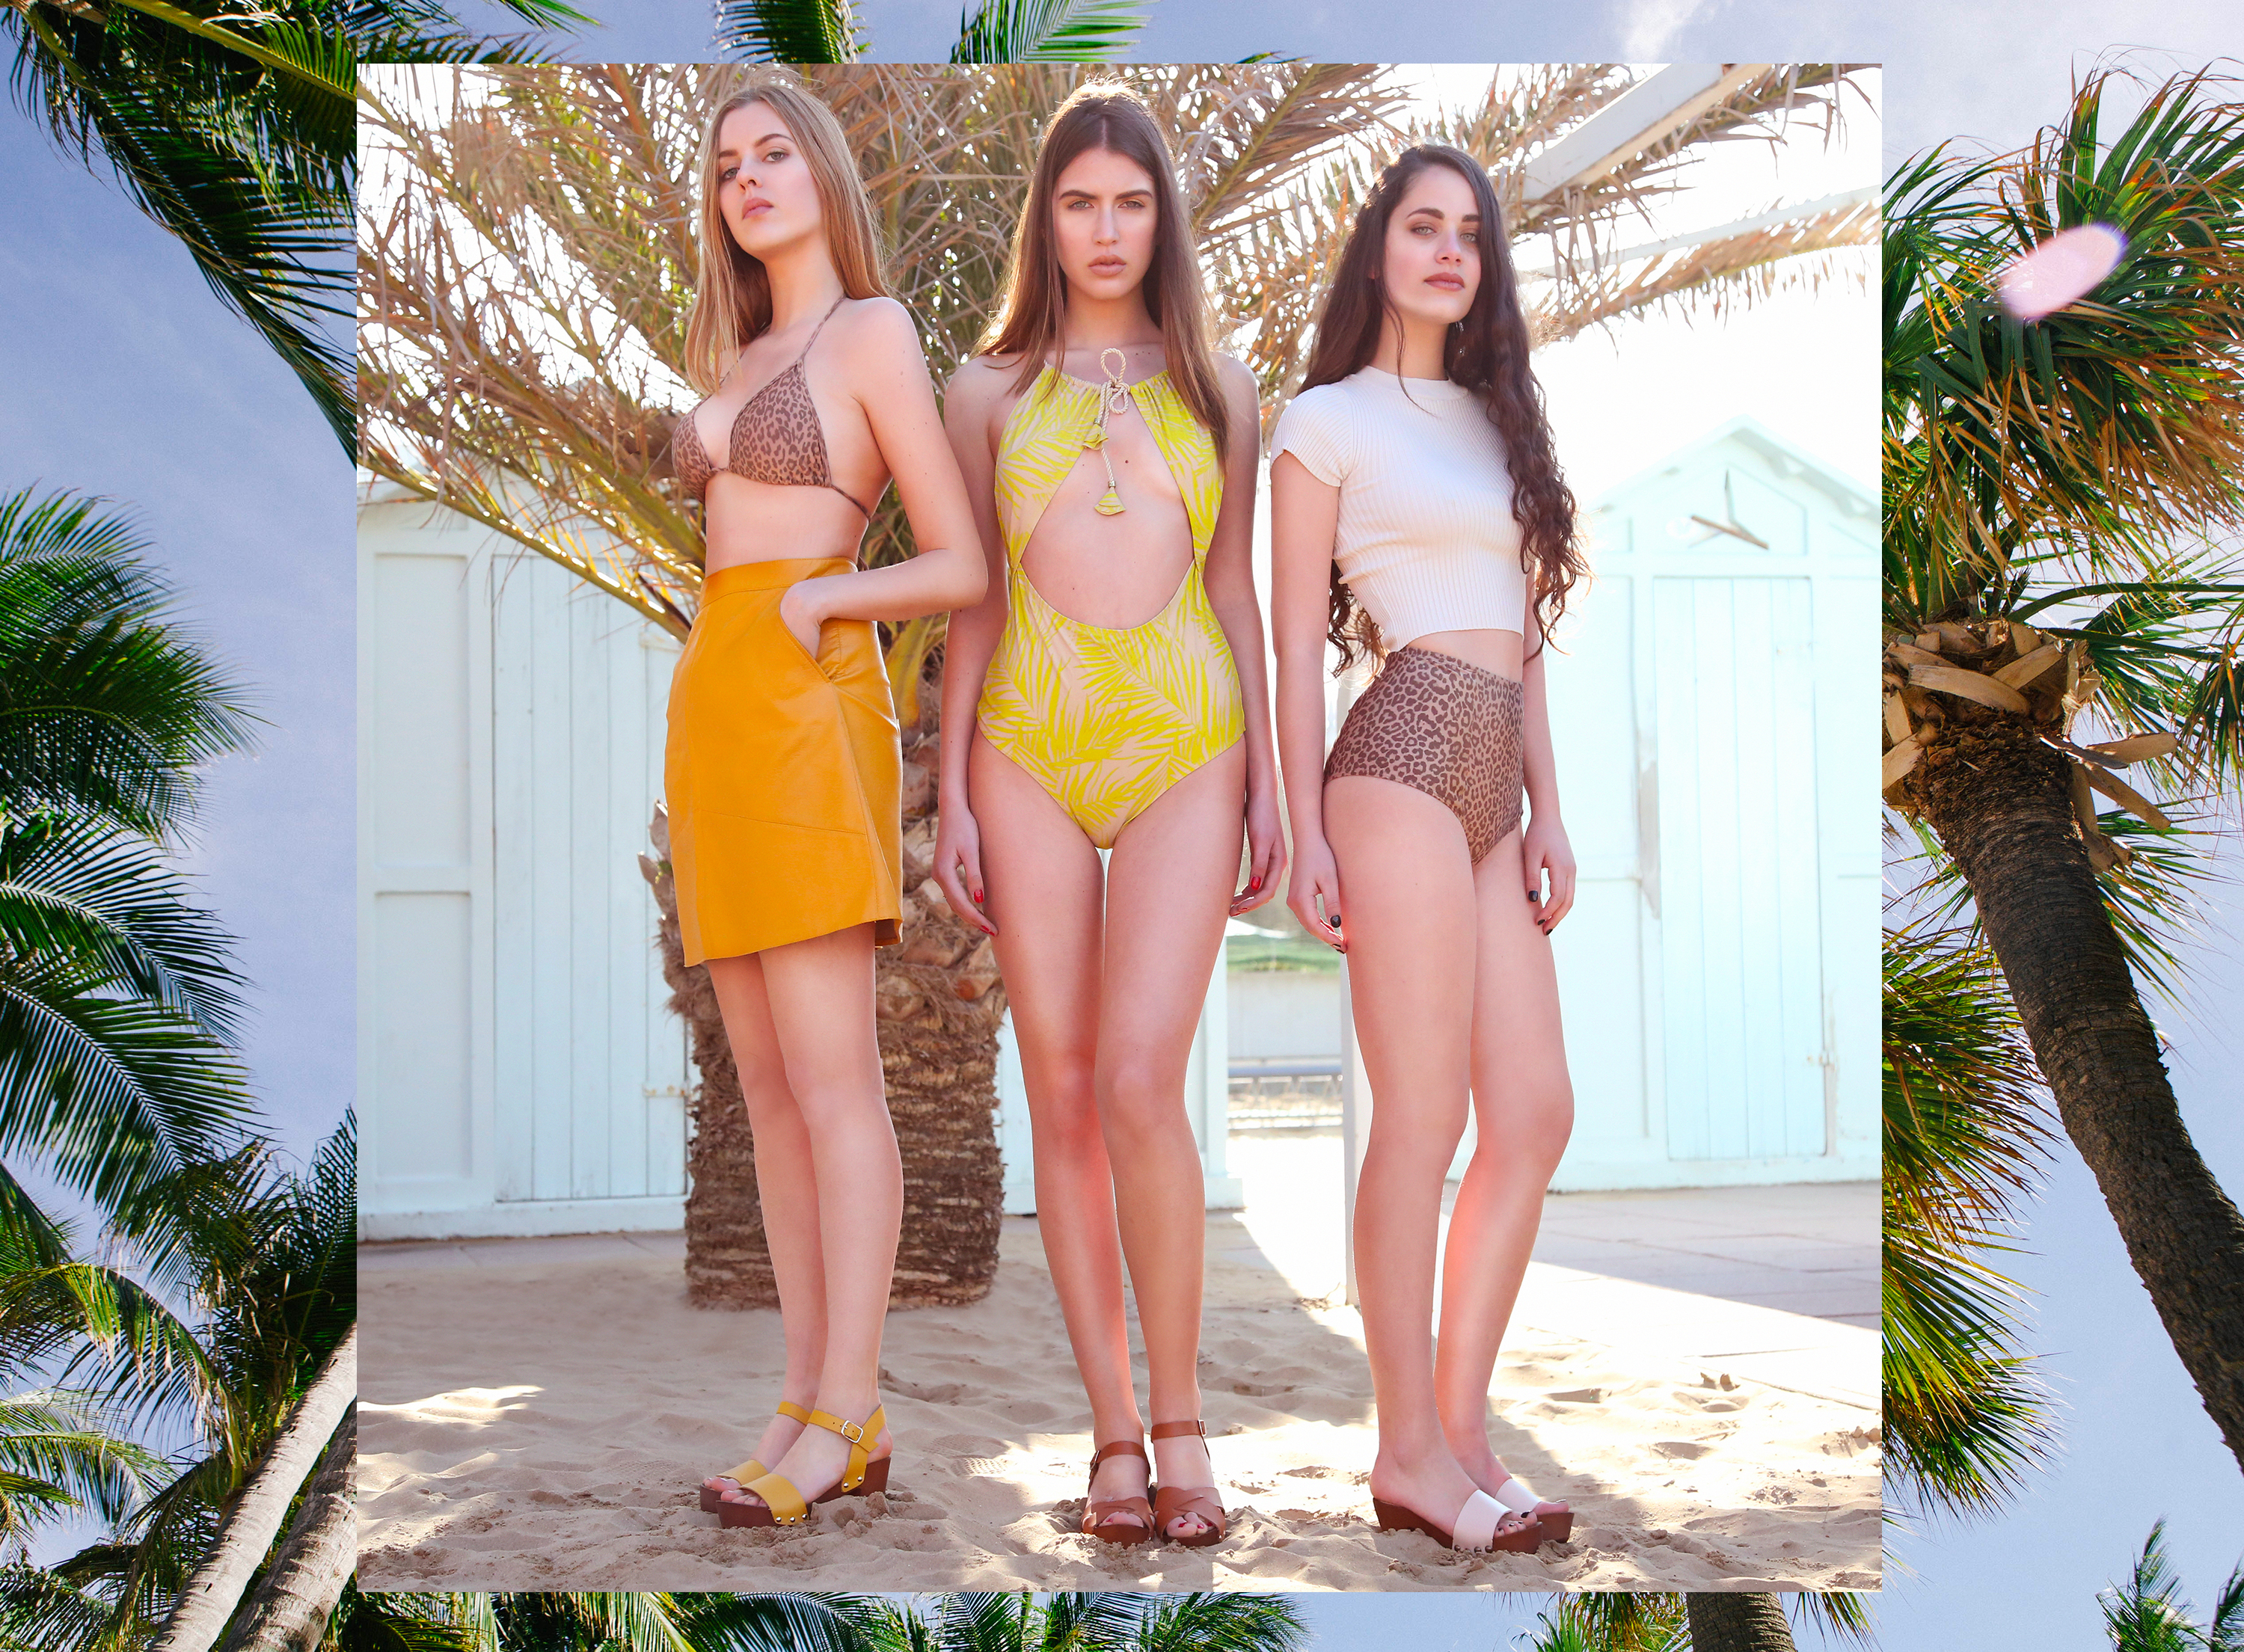 Ana Lublin SS17 collection - Brandsdistribution